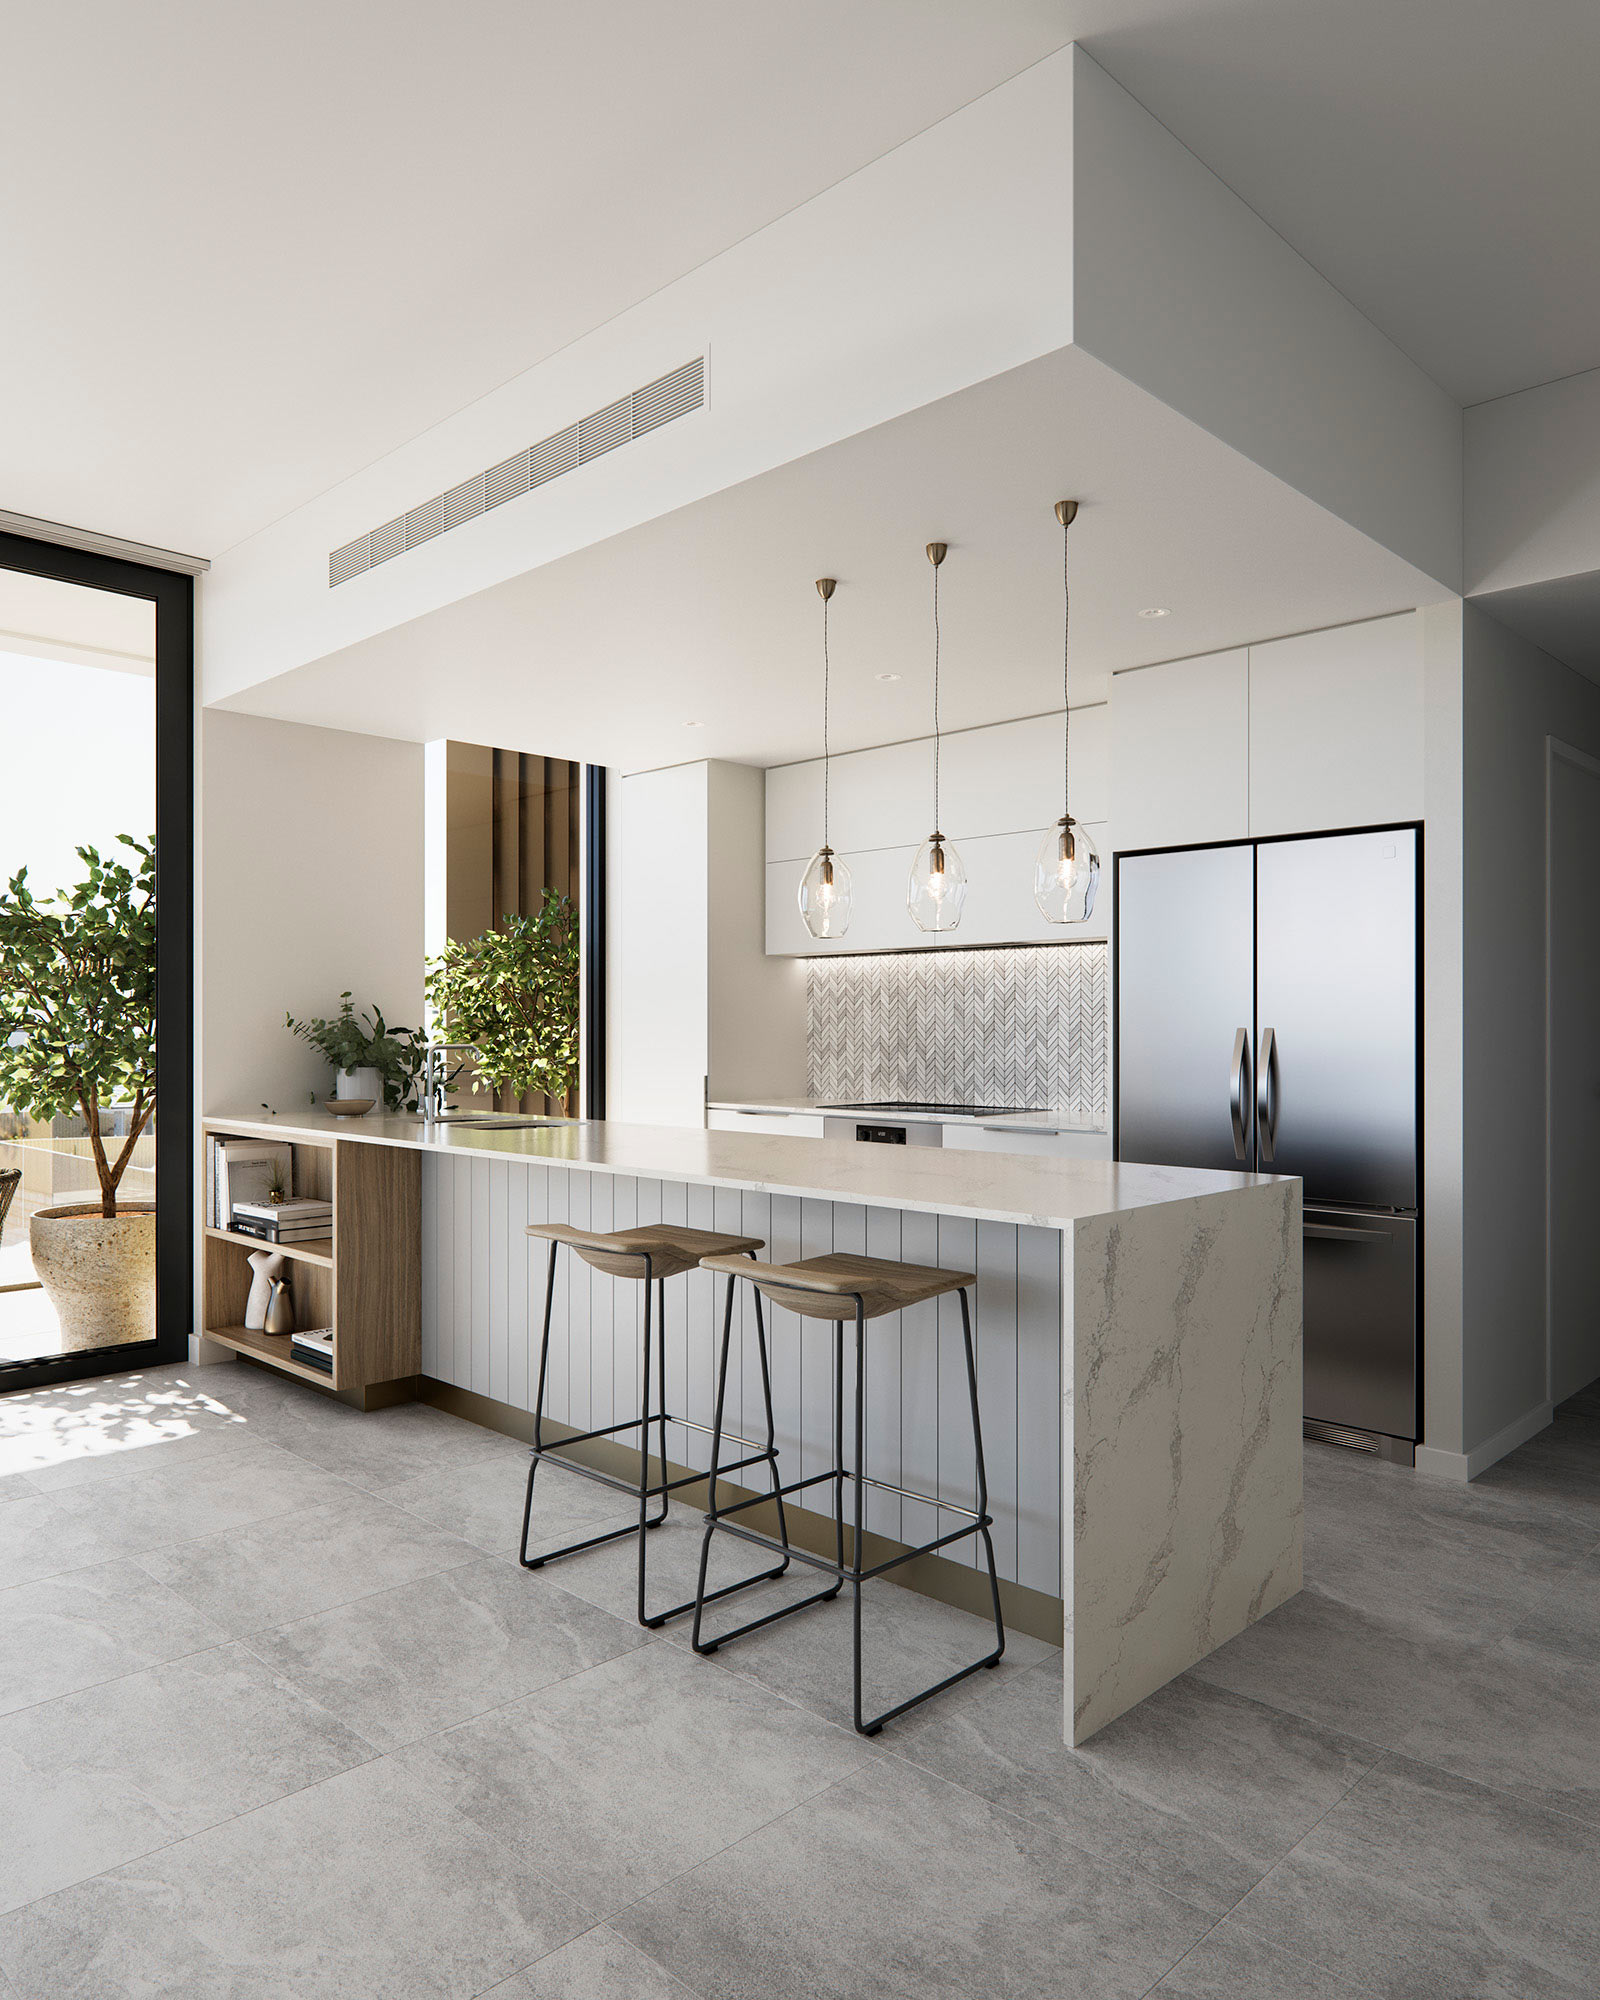 kitchen-render-1.jpg